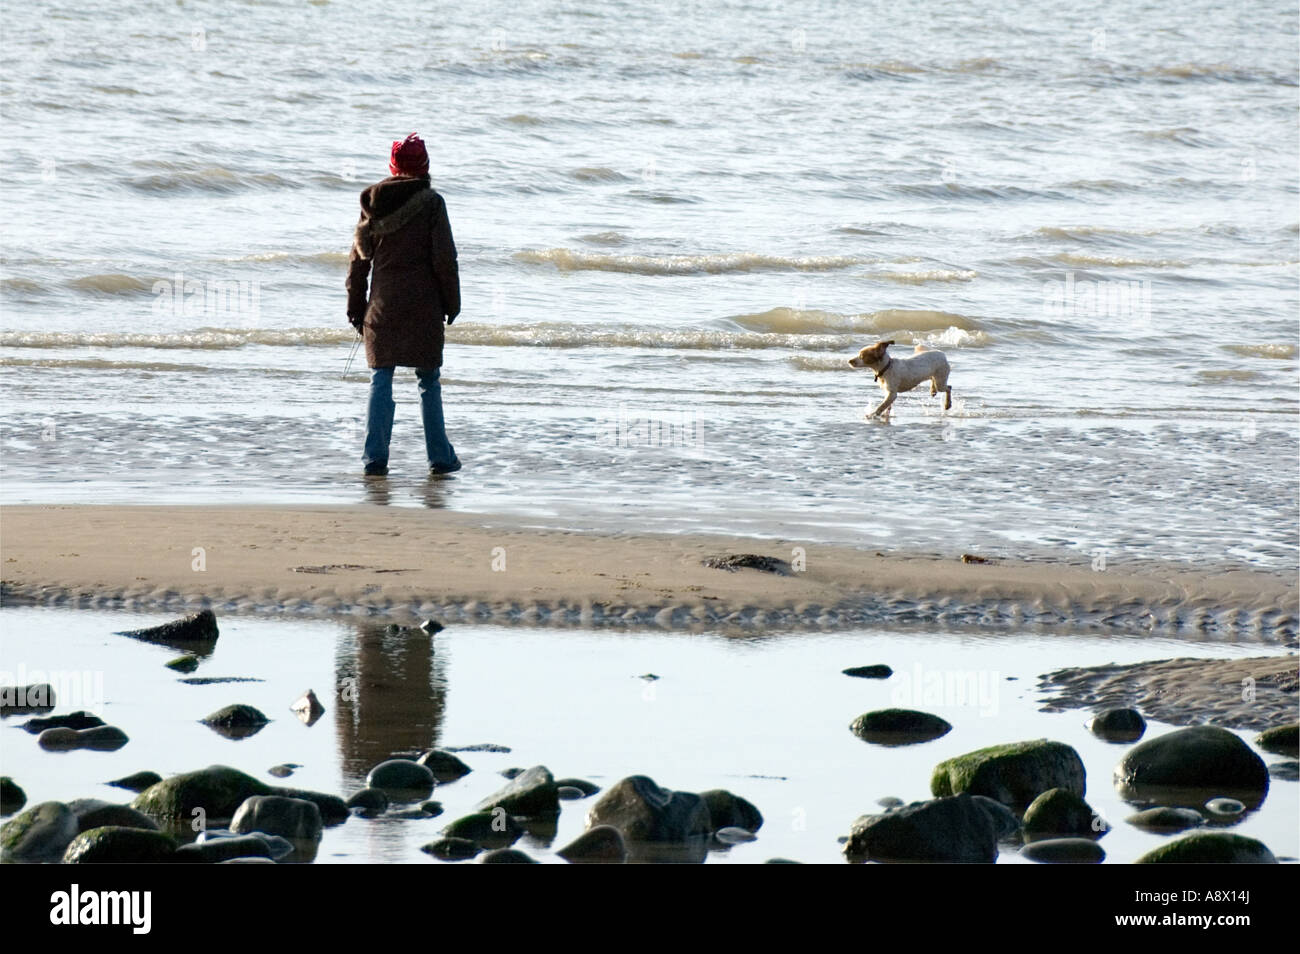 Woman walking her dog on the beach. - Stock Image